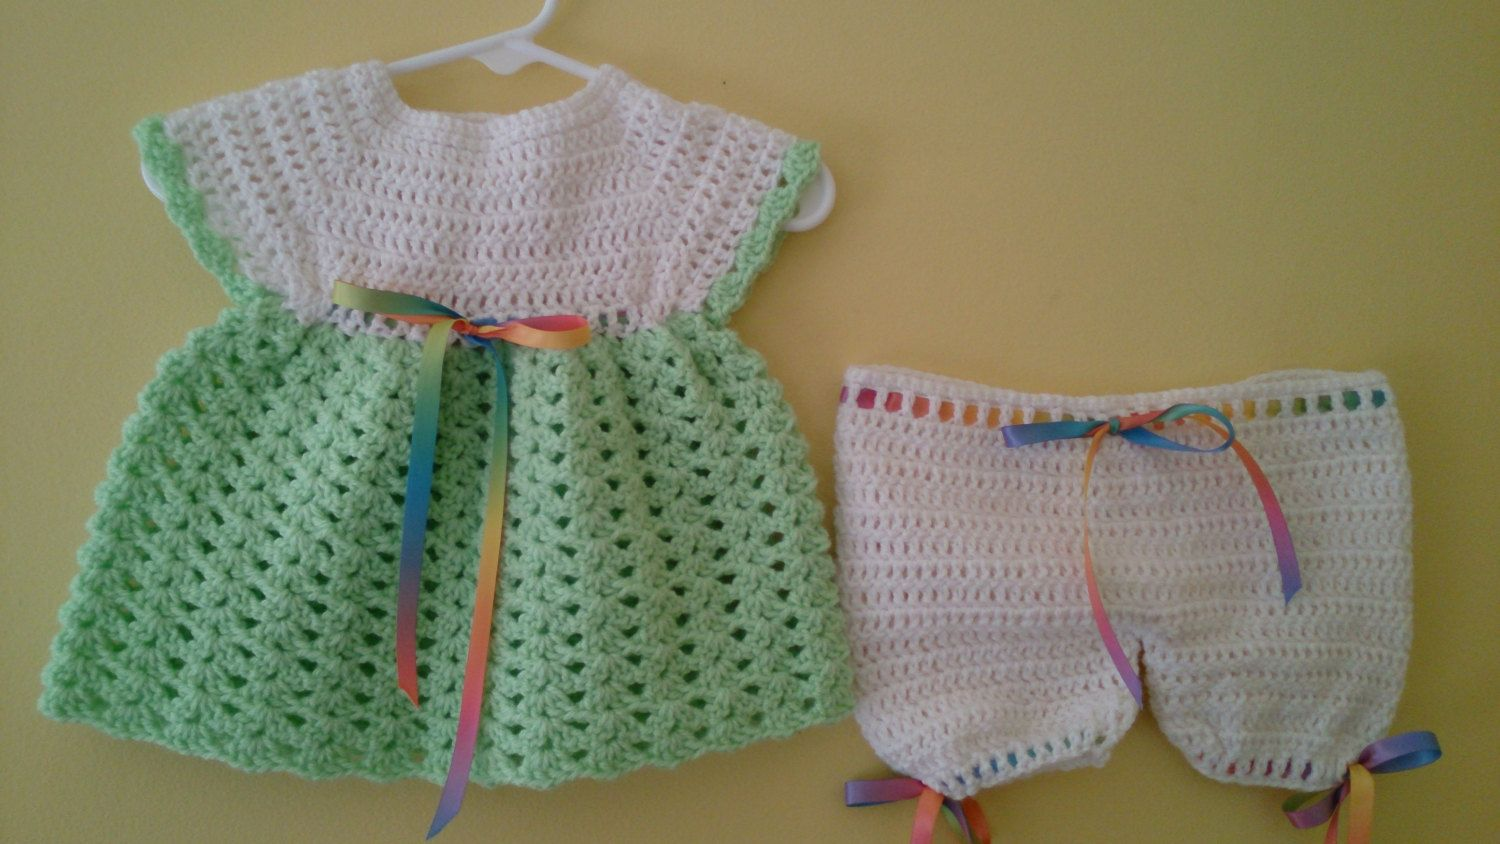 Crochet Angel Top and Pants - Size Newborn - 3 mos by LittleLuvCrochet on Etsy